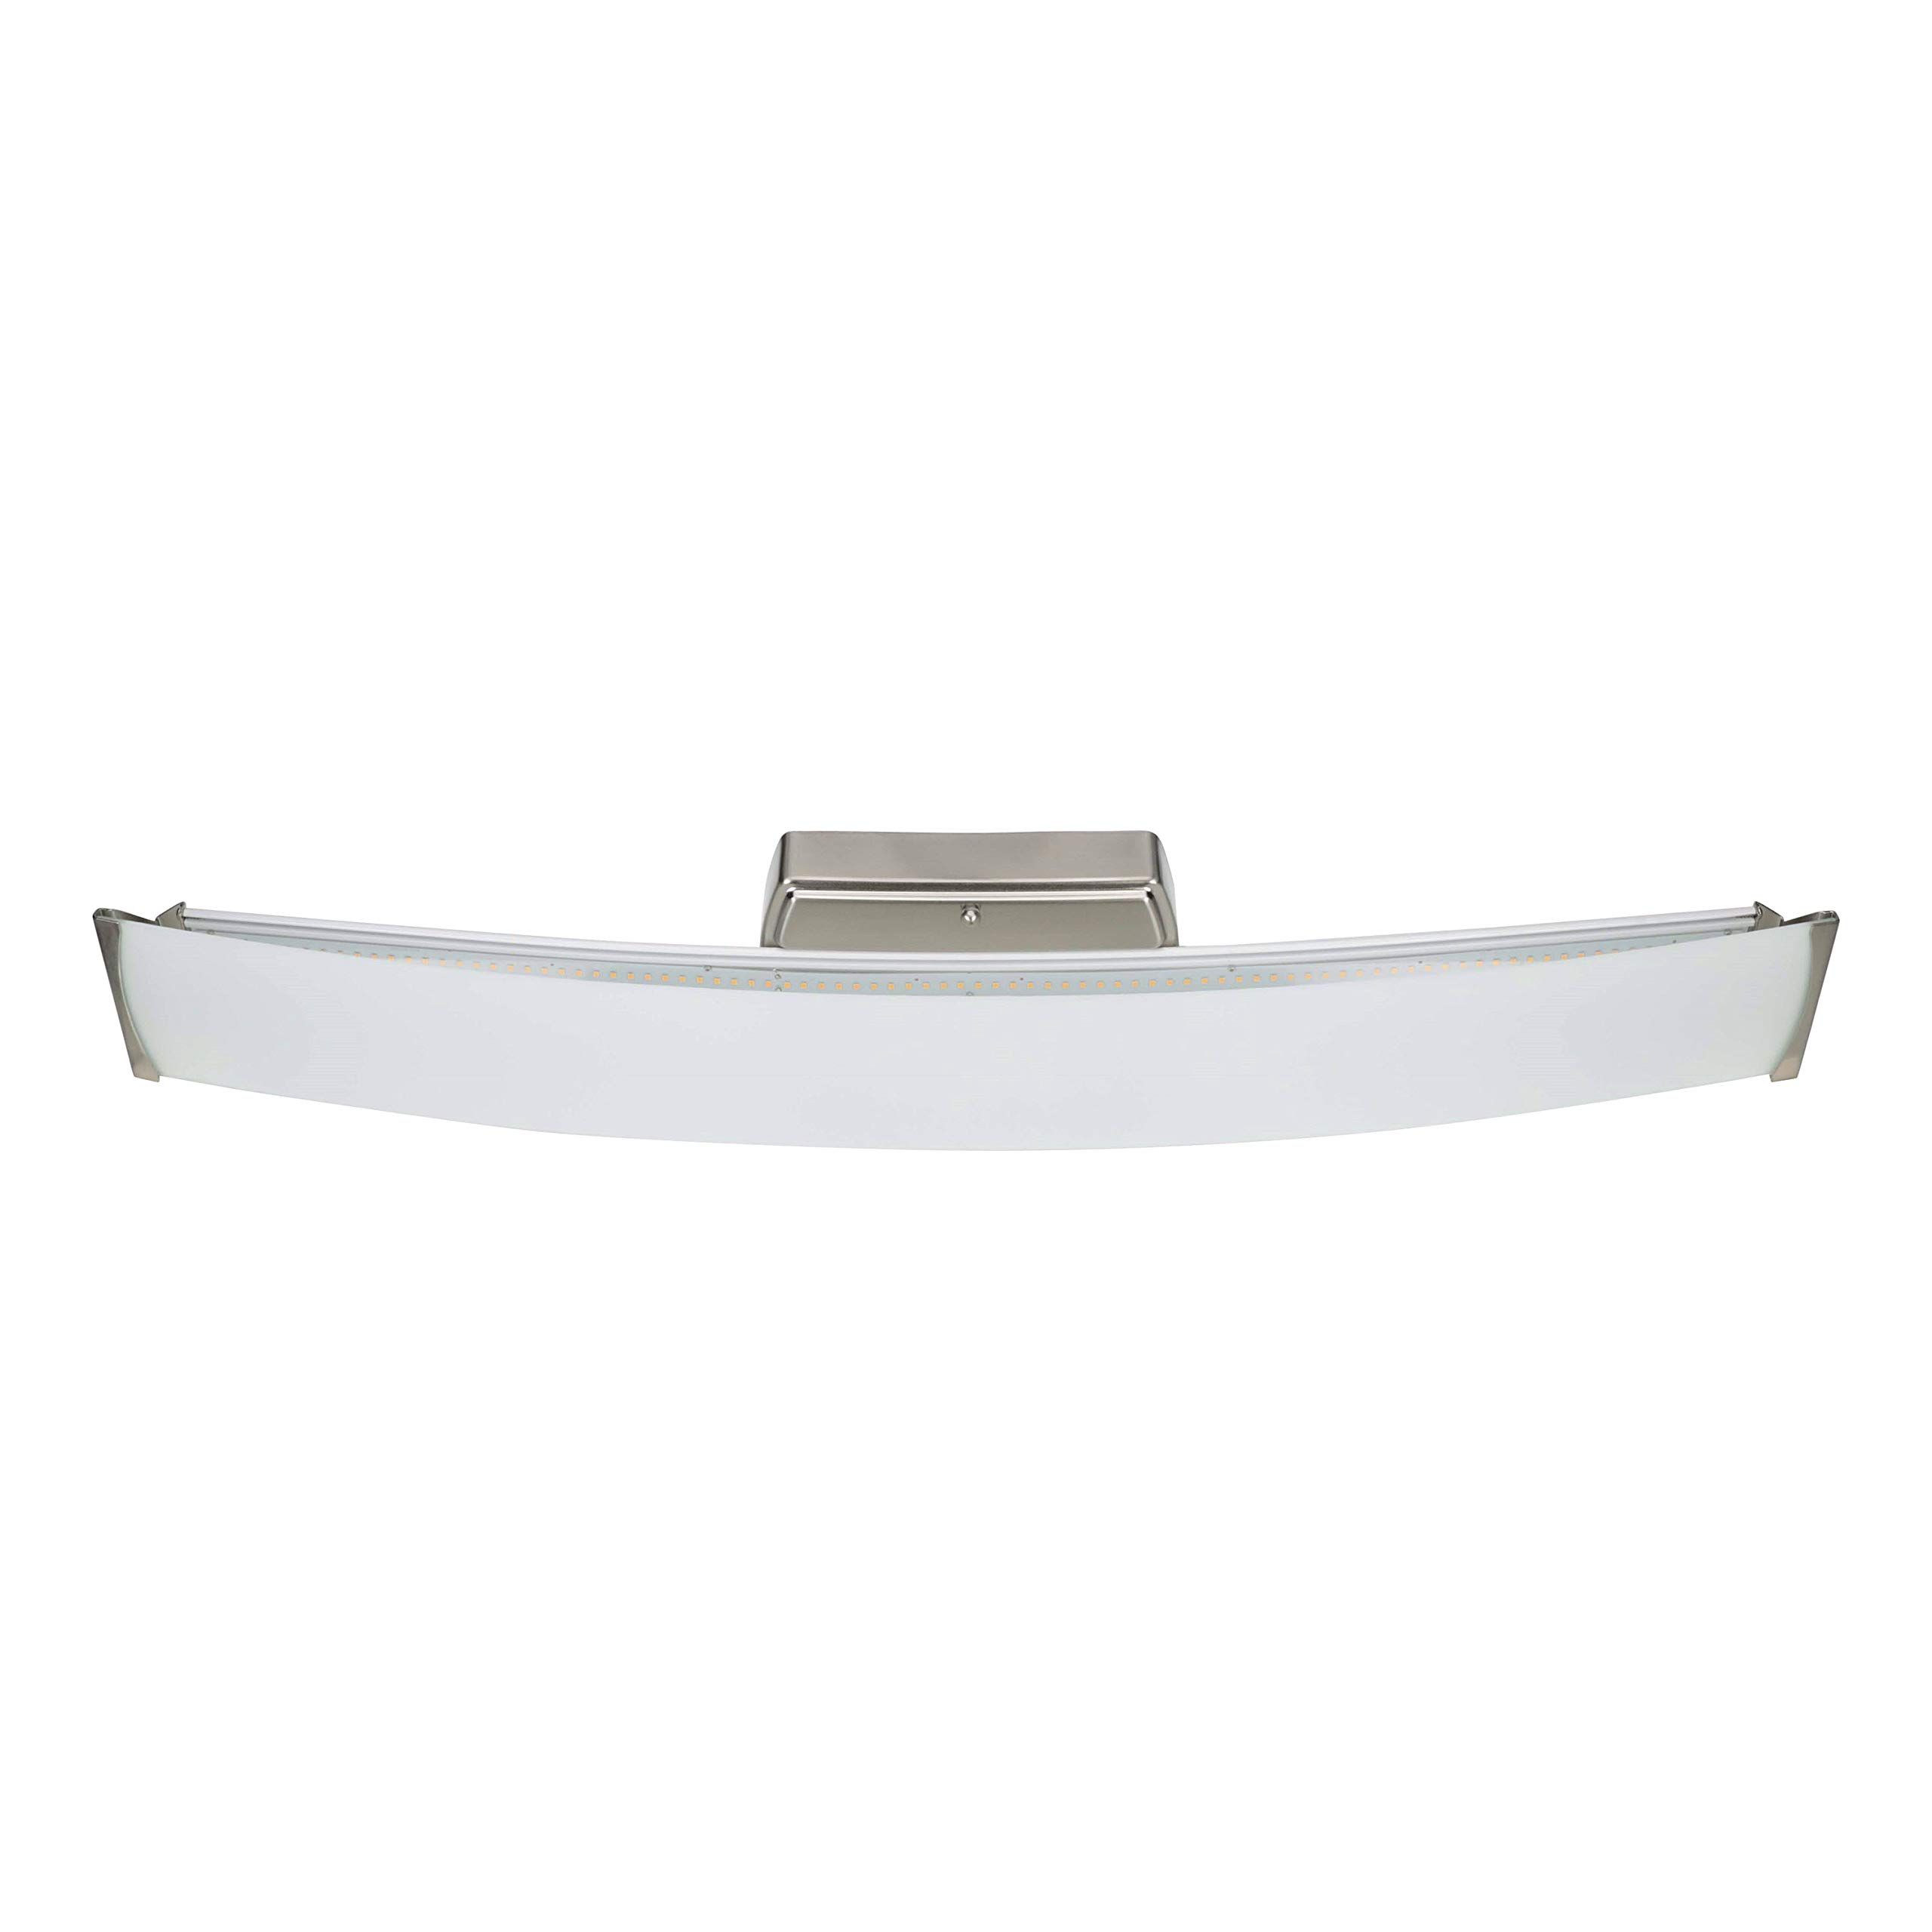 Good Earth Lighting Seattle 32 Inch Led Linear Bathroom Vanity Light Brushed Nickel 300